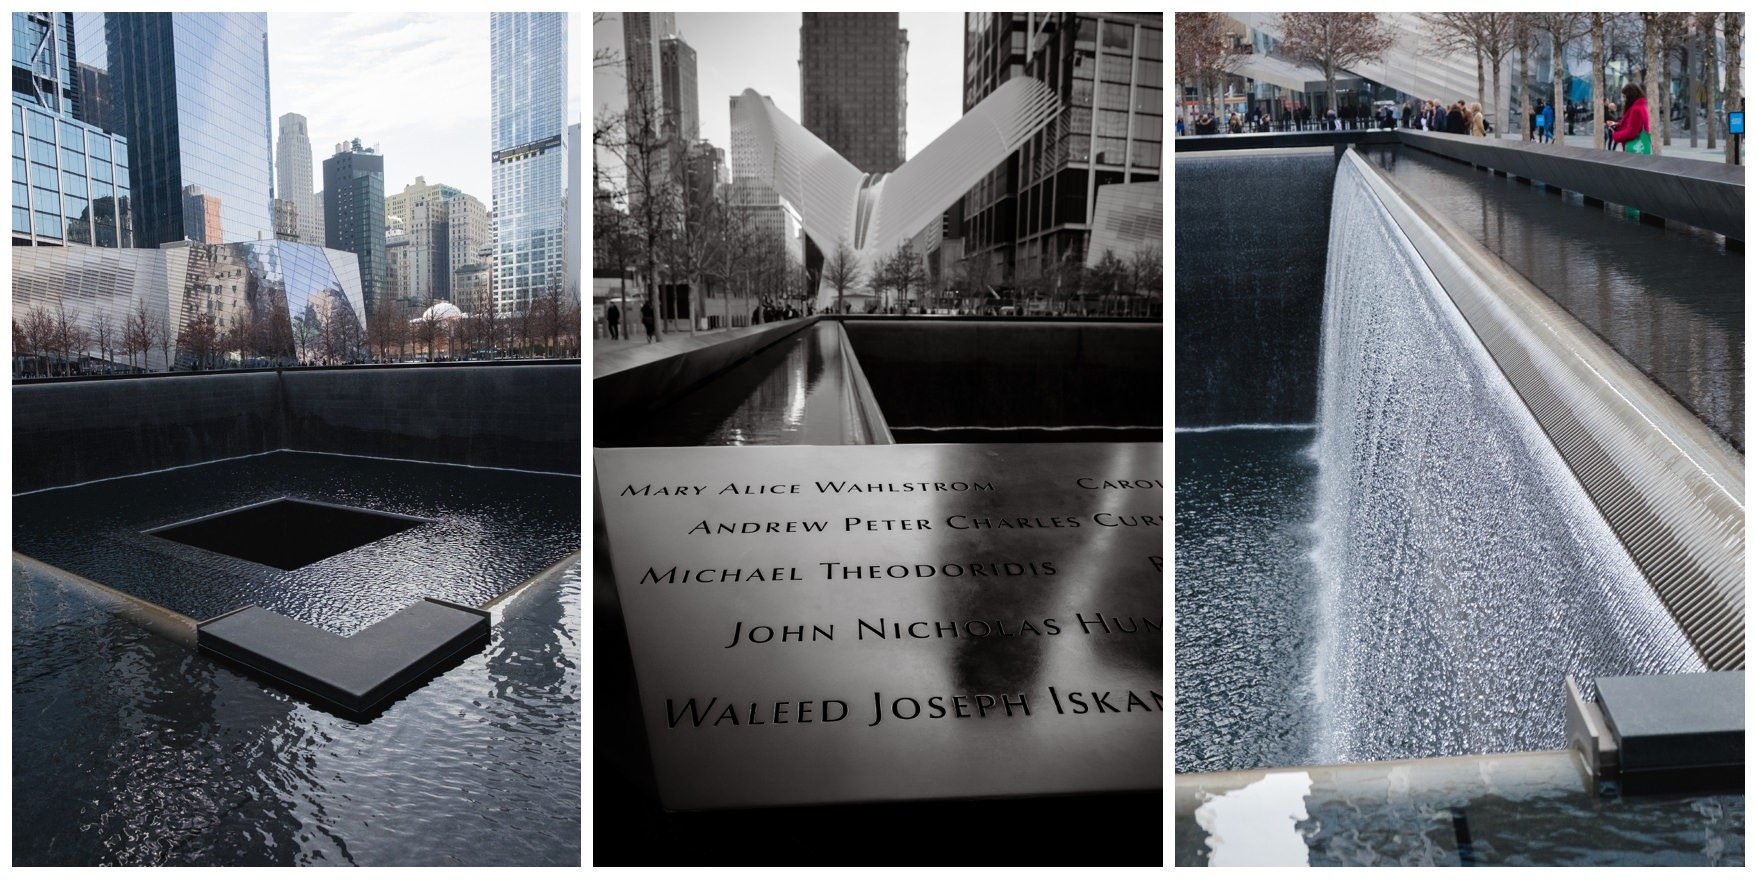 9/11 memorial showing the names engraved of those who perished and the flowing water